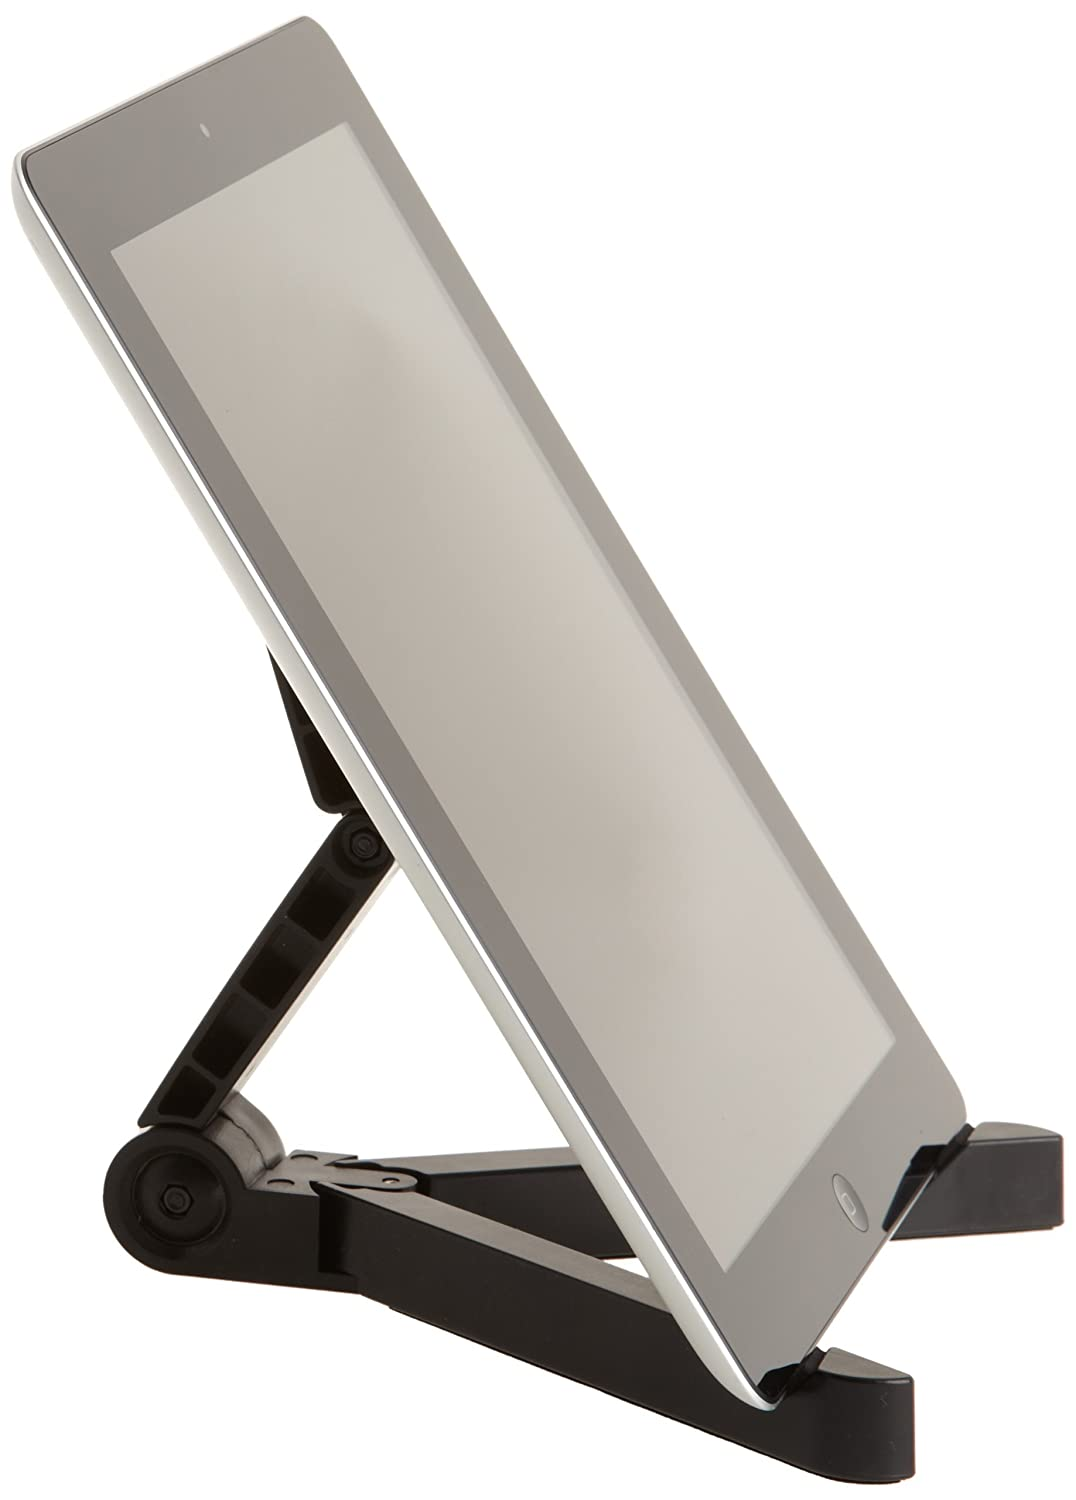 AmazonBasics Adjustable Tablet Stand